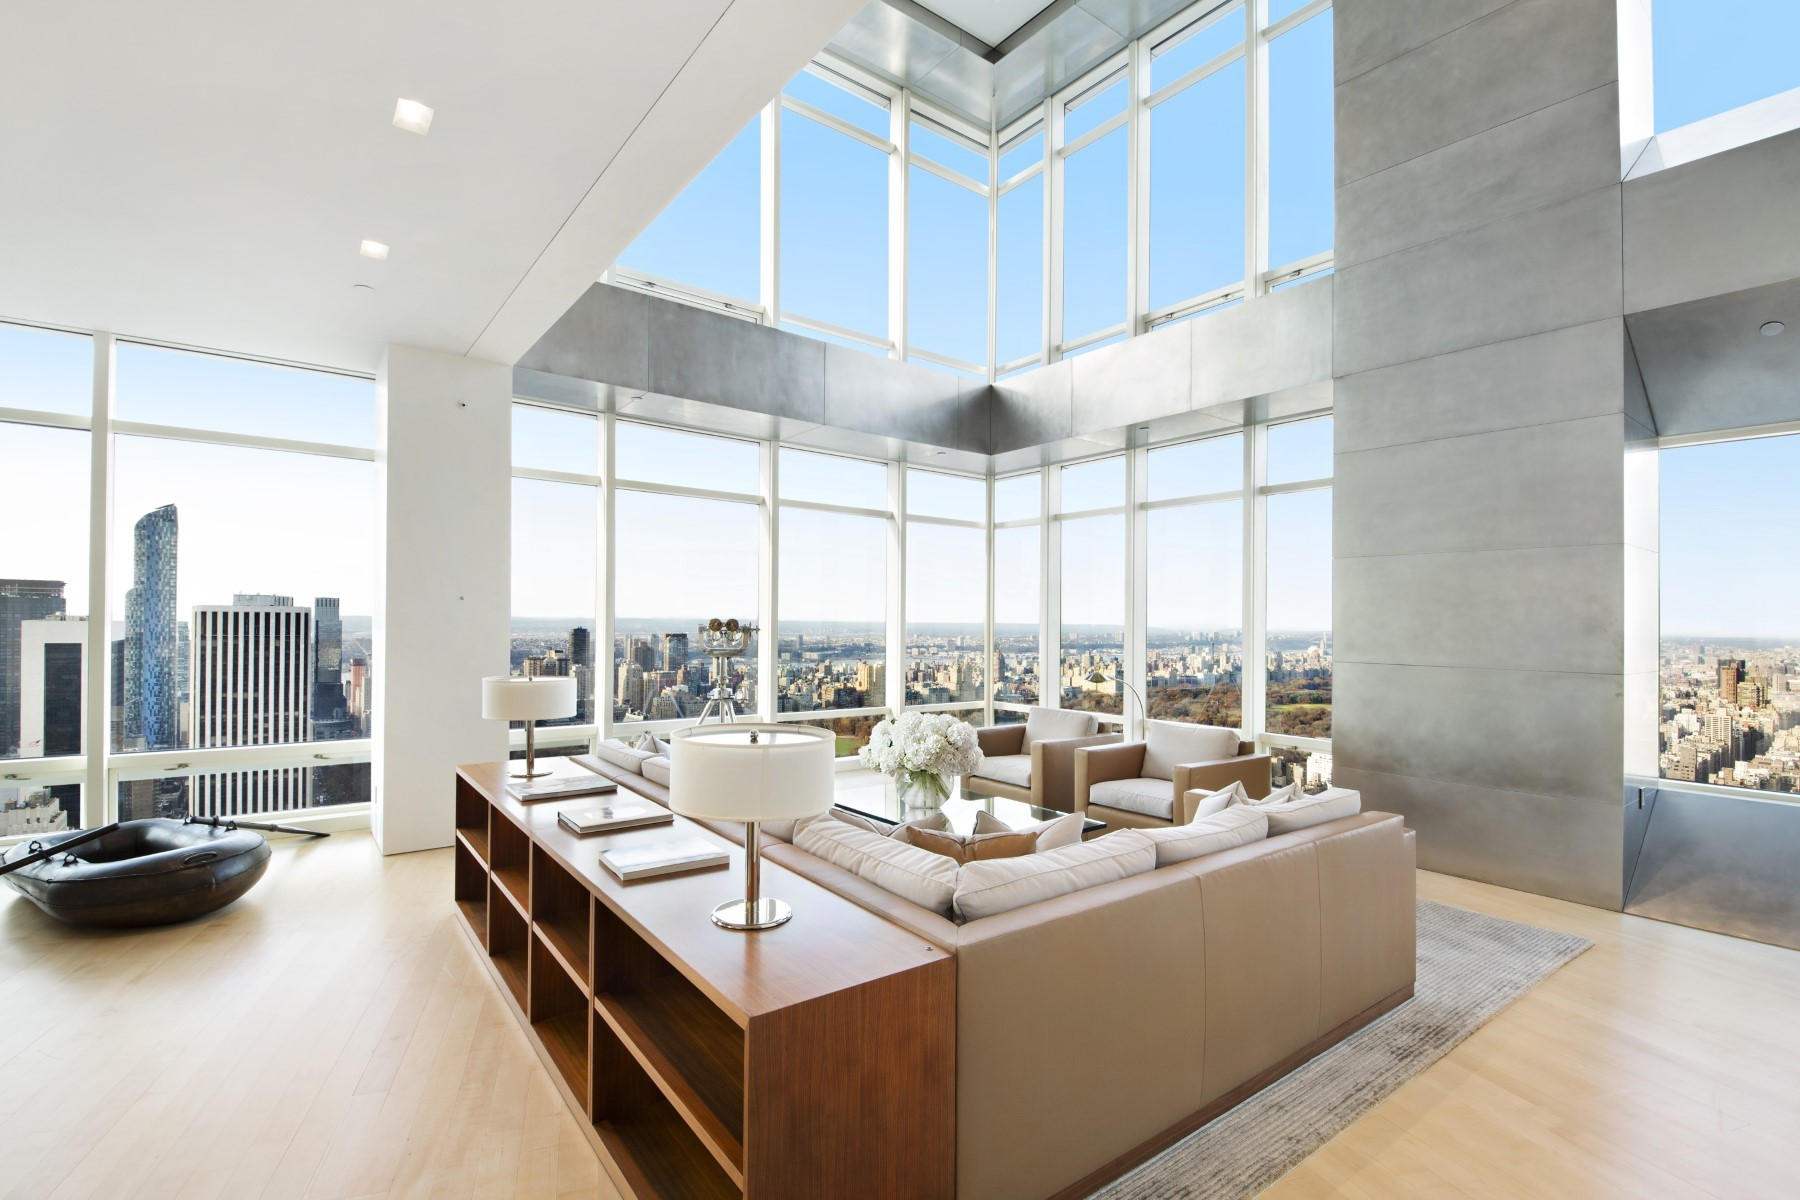 Phenomenal 82 million penthouse apartment in new york for Penthouse apartment for sale